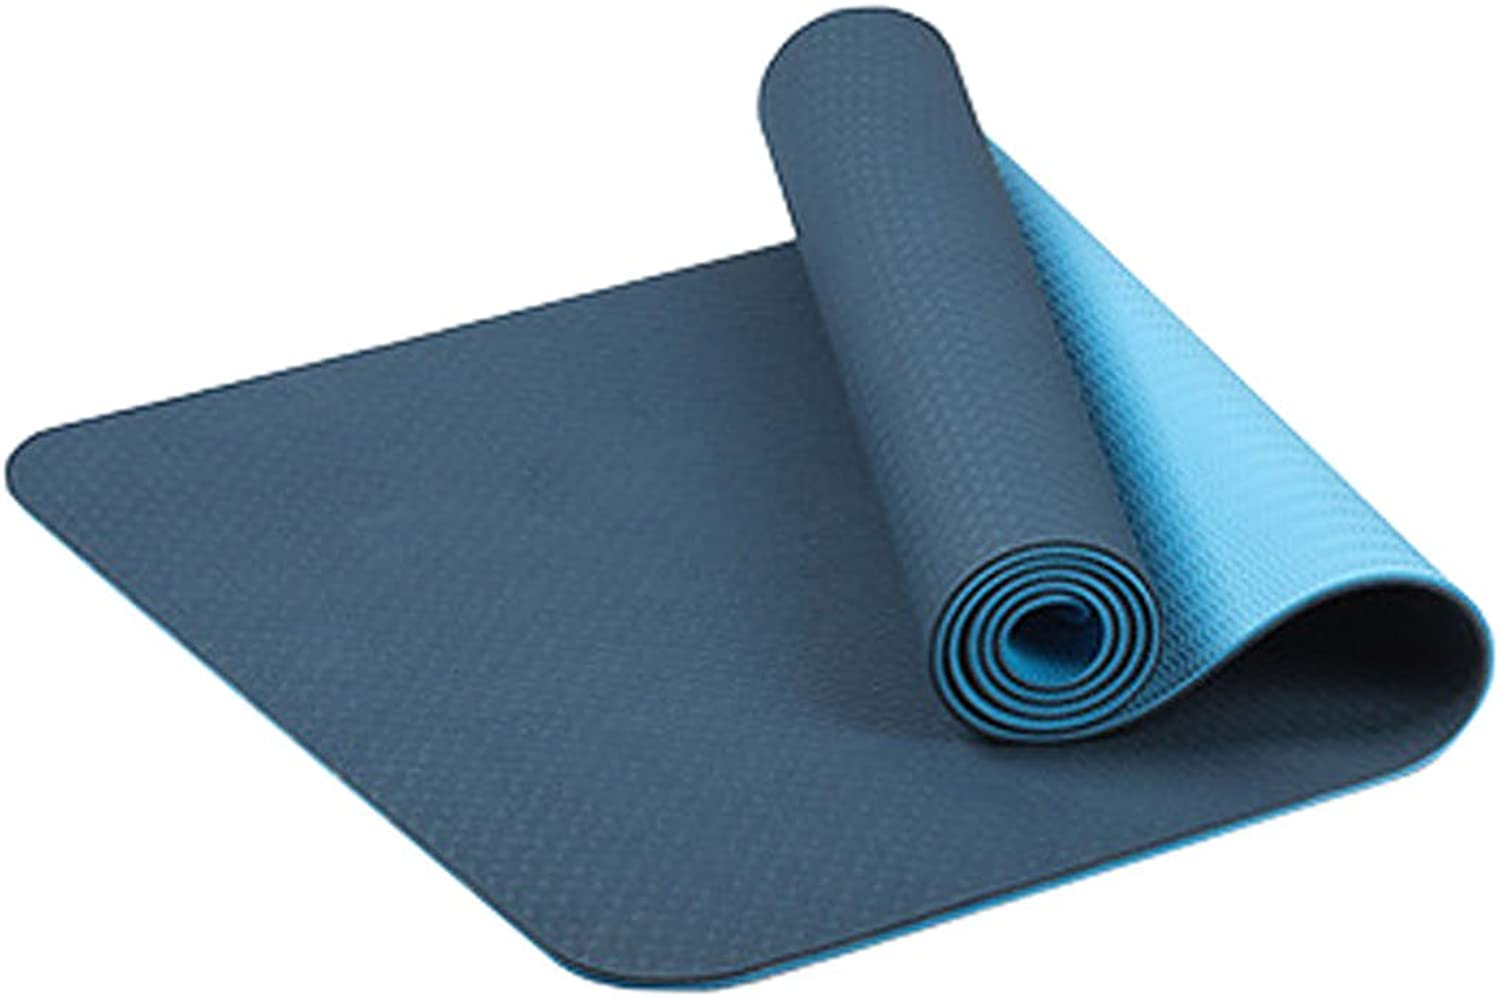 Exercise Gym Camping Fitness Workout Non Slip PVC Foam Yoga Pilates Mat